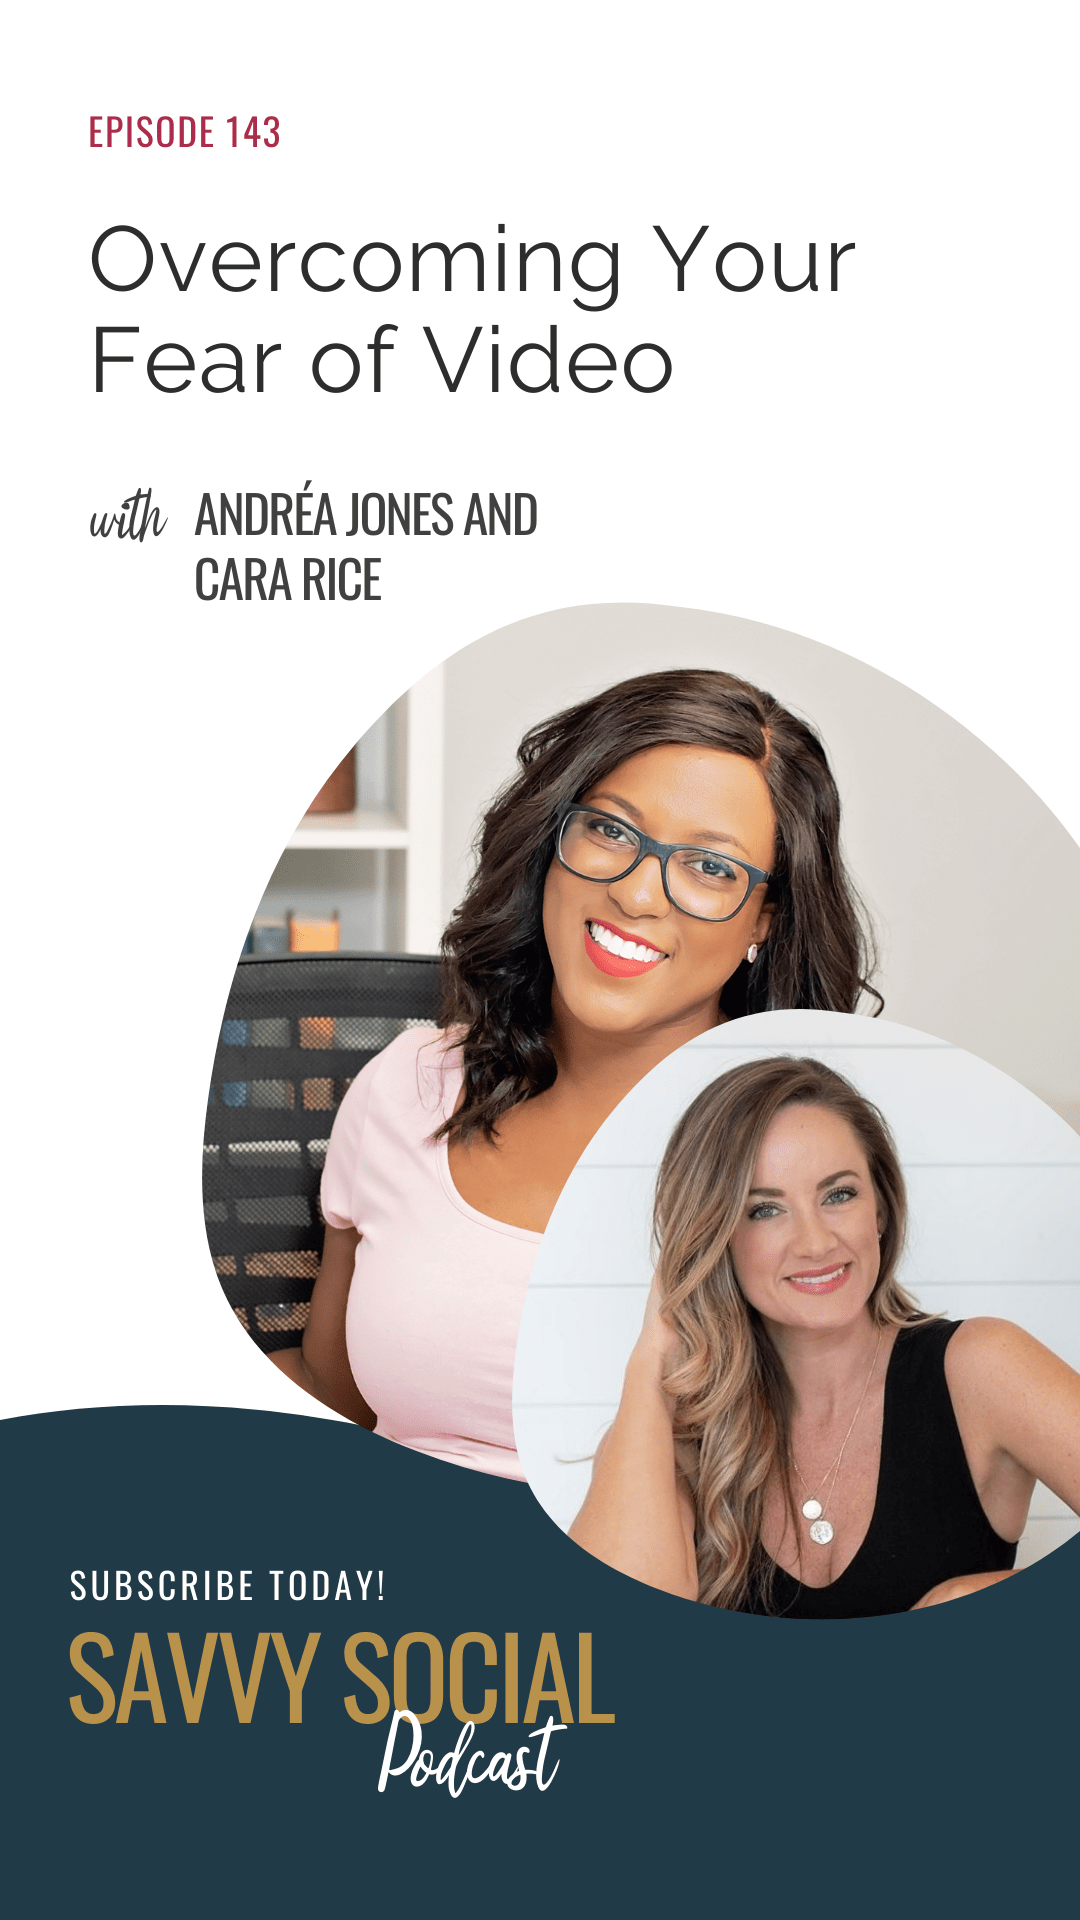 Overcoming Your Fear of Video with Cara Rice